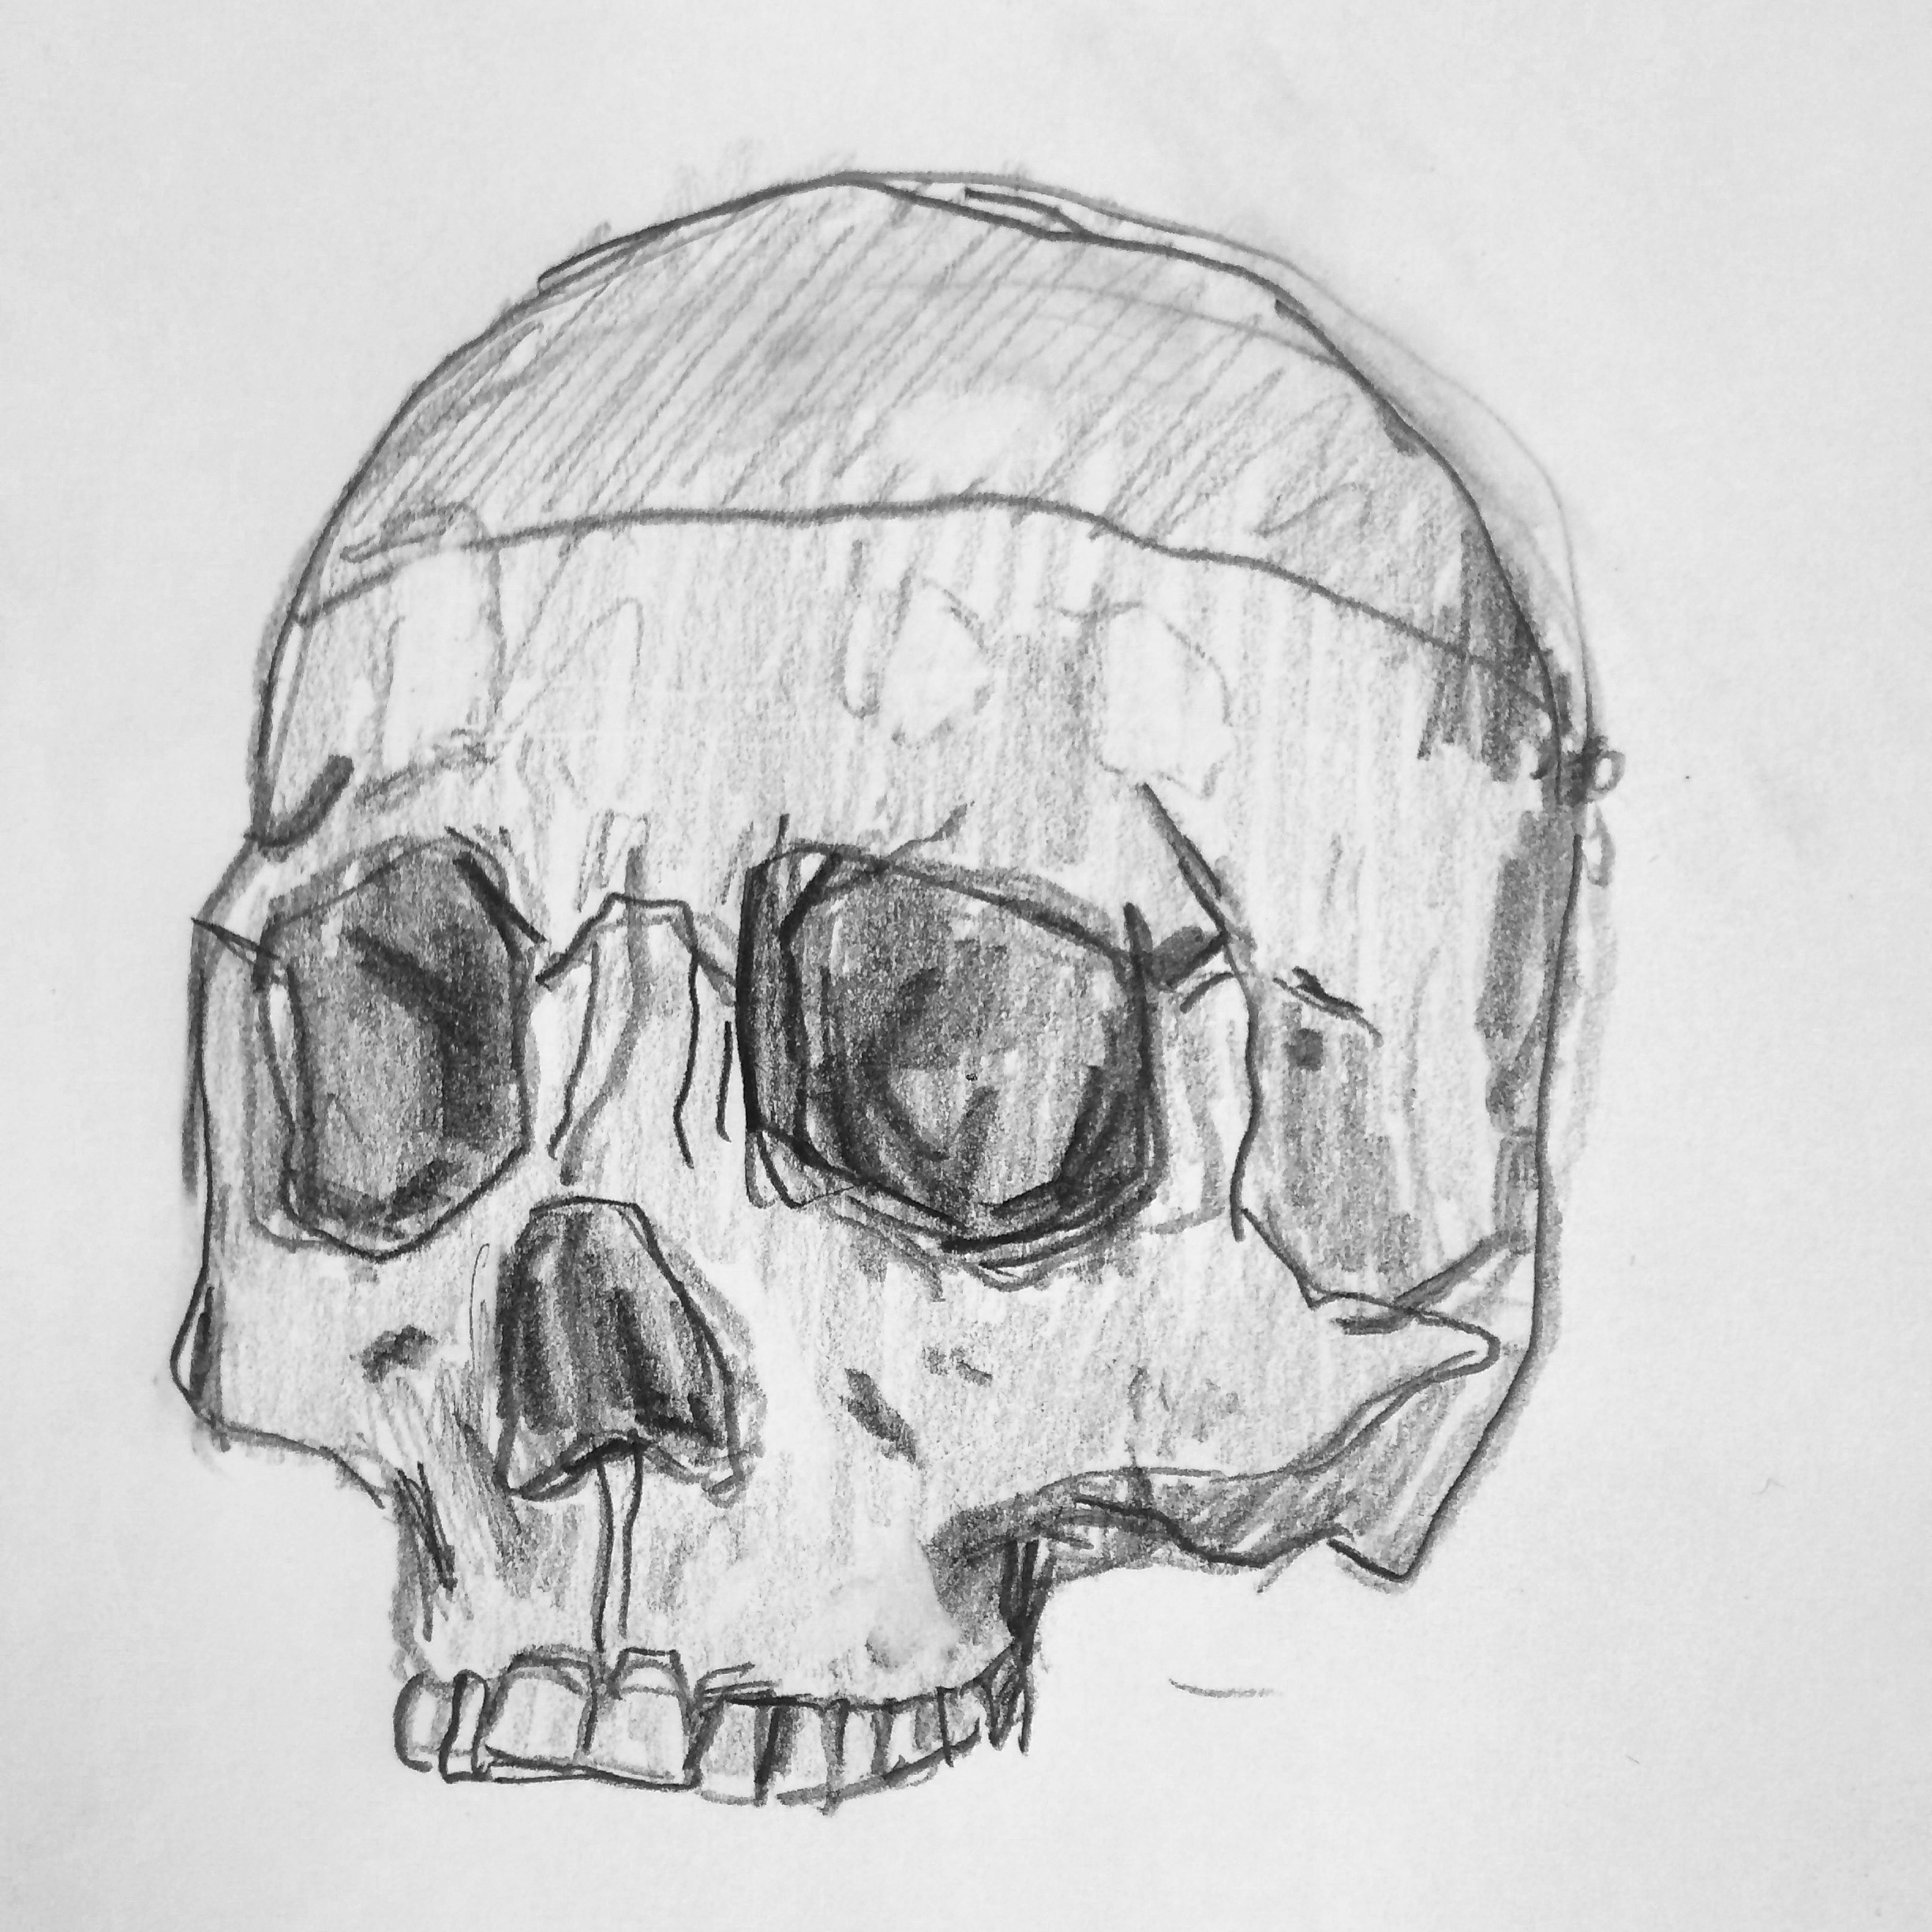 Skull  2016, pencil on paper, 6 x 8 in, from a sketch journal